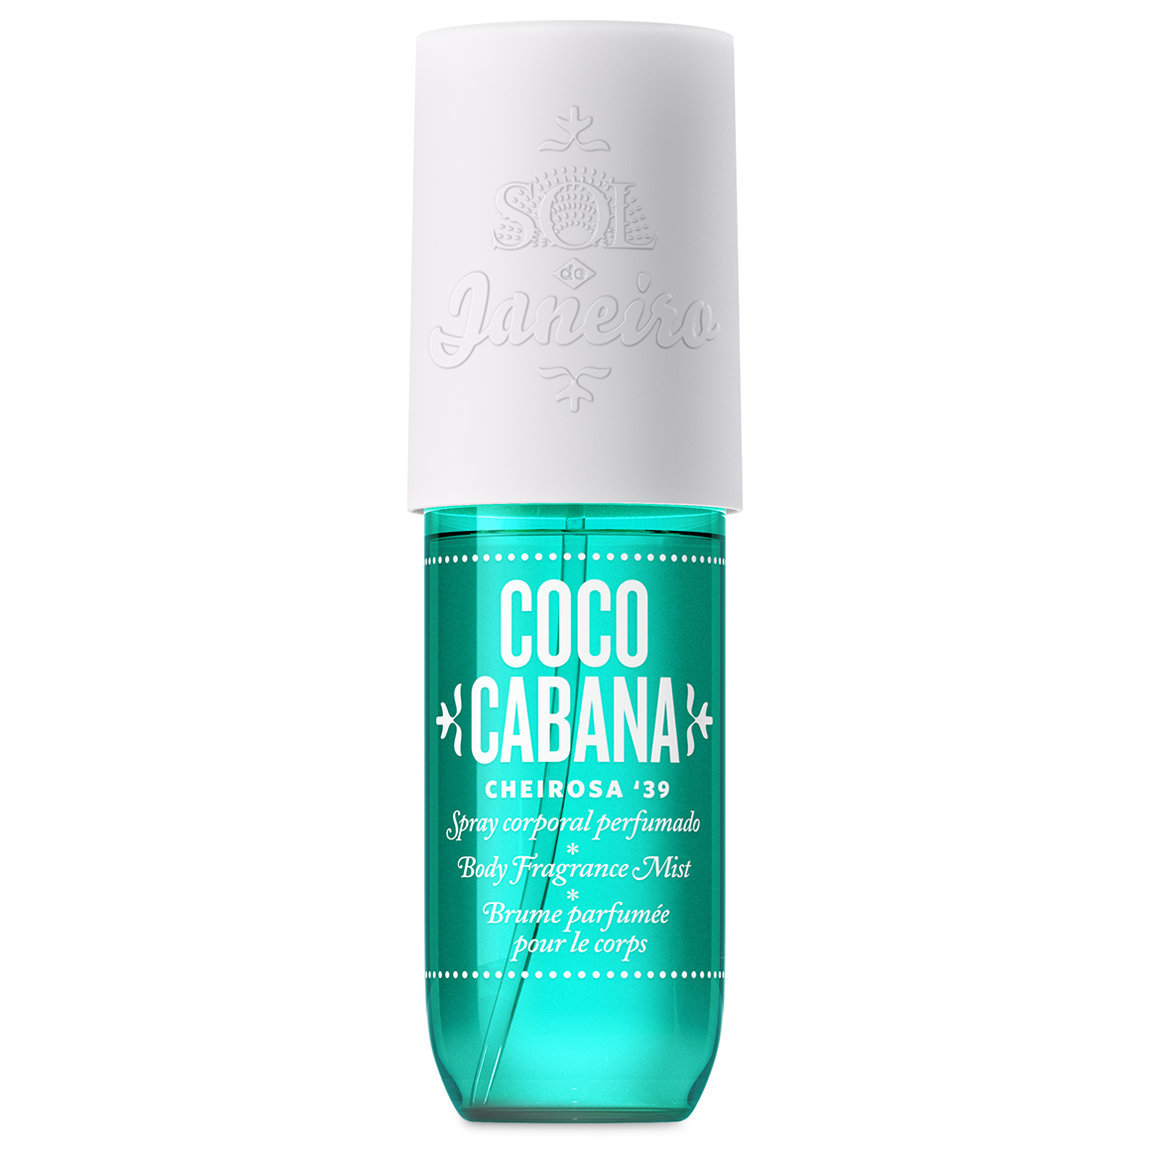 Sol de Janeiro Coco Cabana Body Fragrance Mist alternative view 1 - product swatch.